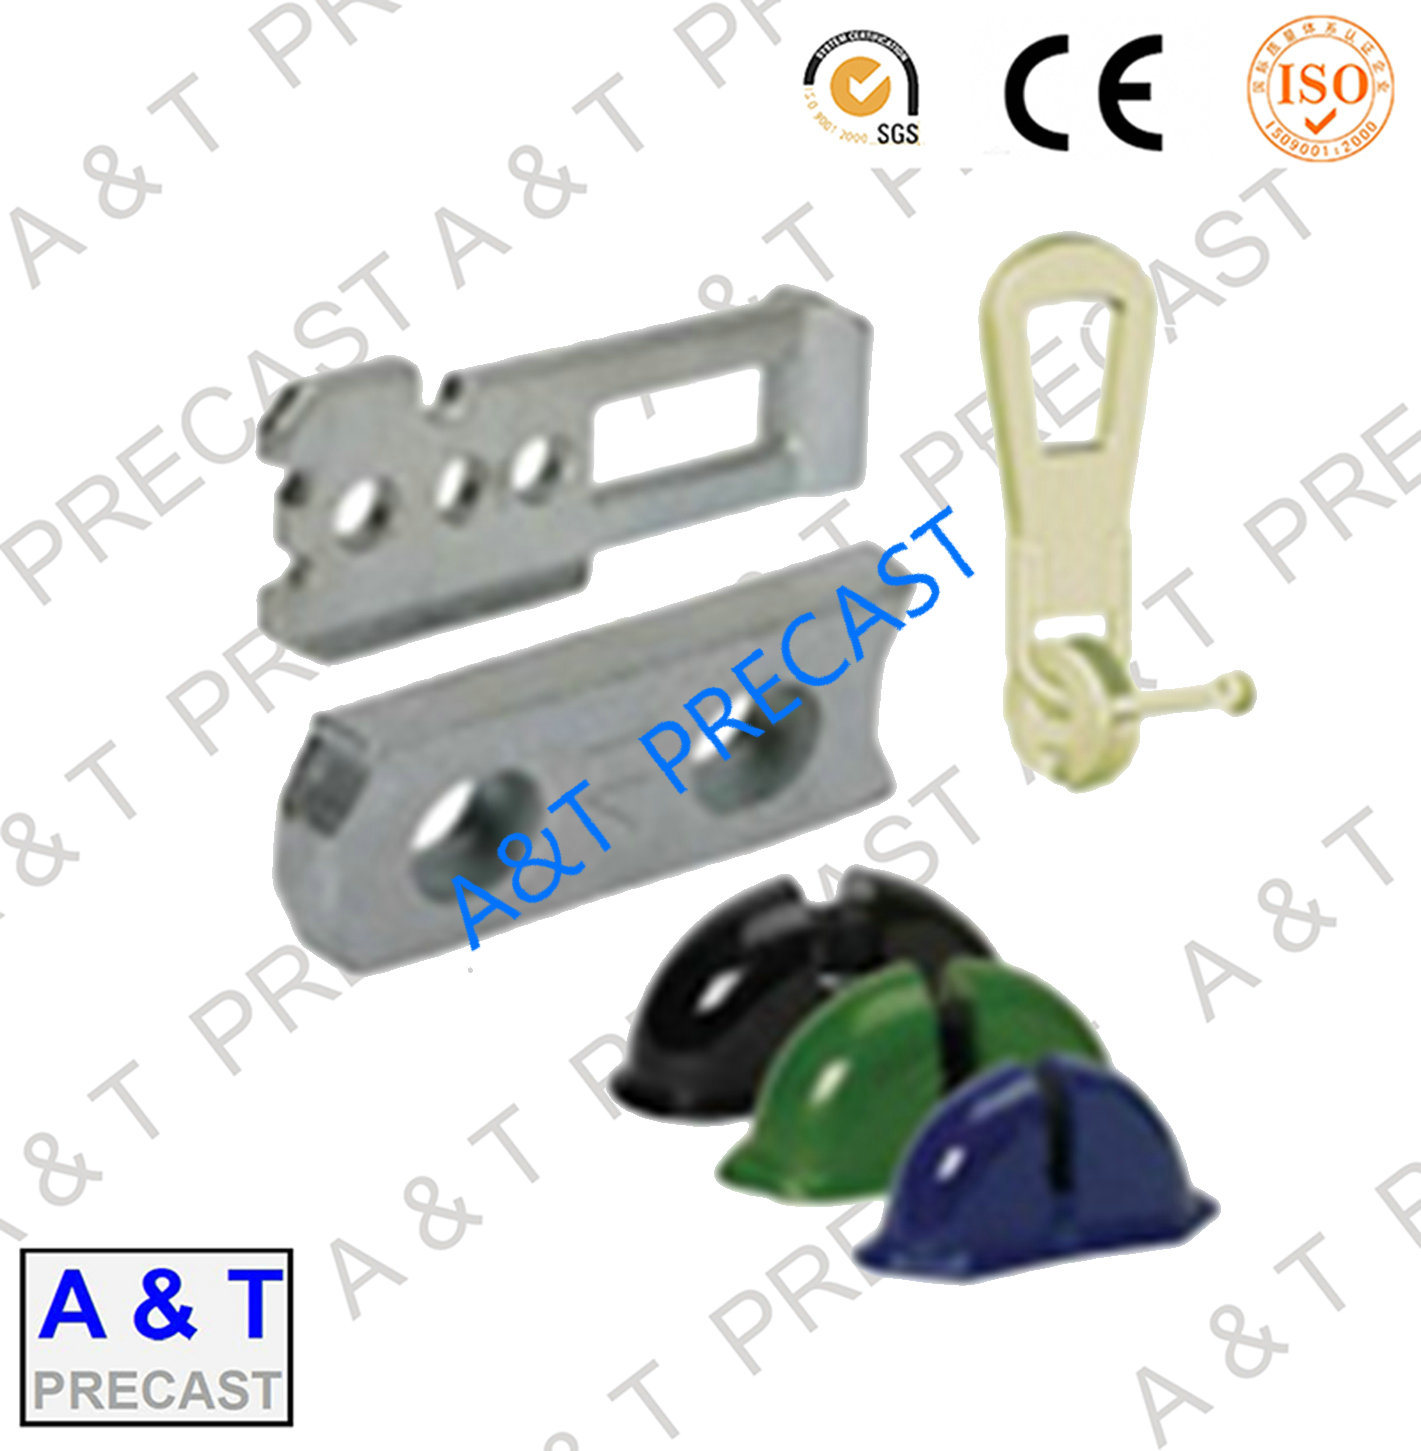 Erection Anchor /Lifting Anchor/Precast Concrete Accessories Parts for Construction Hardware